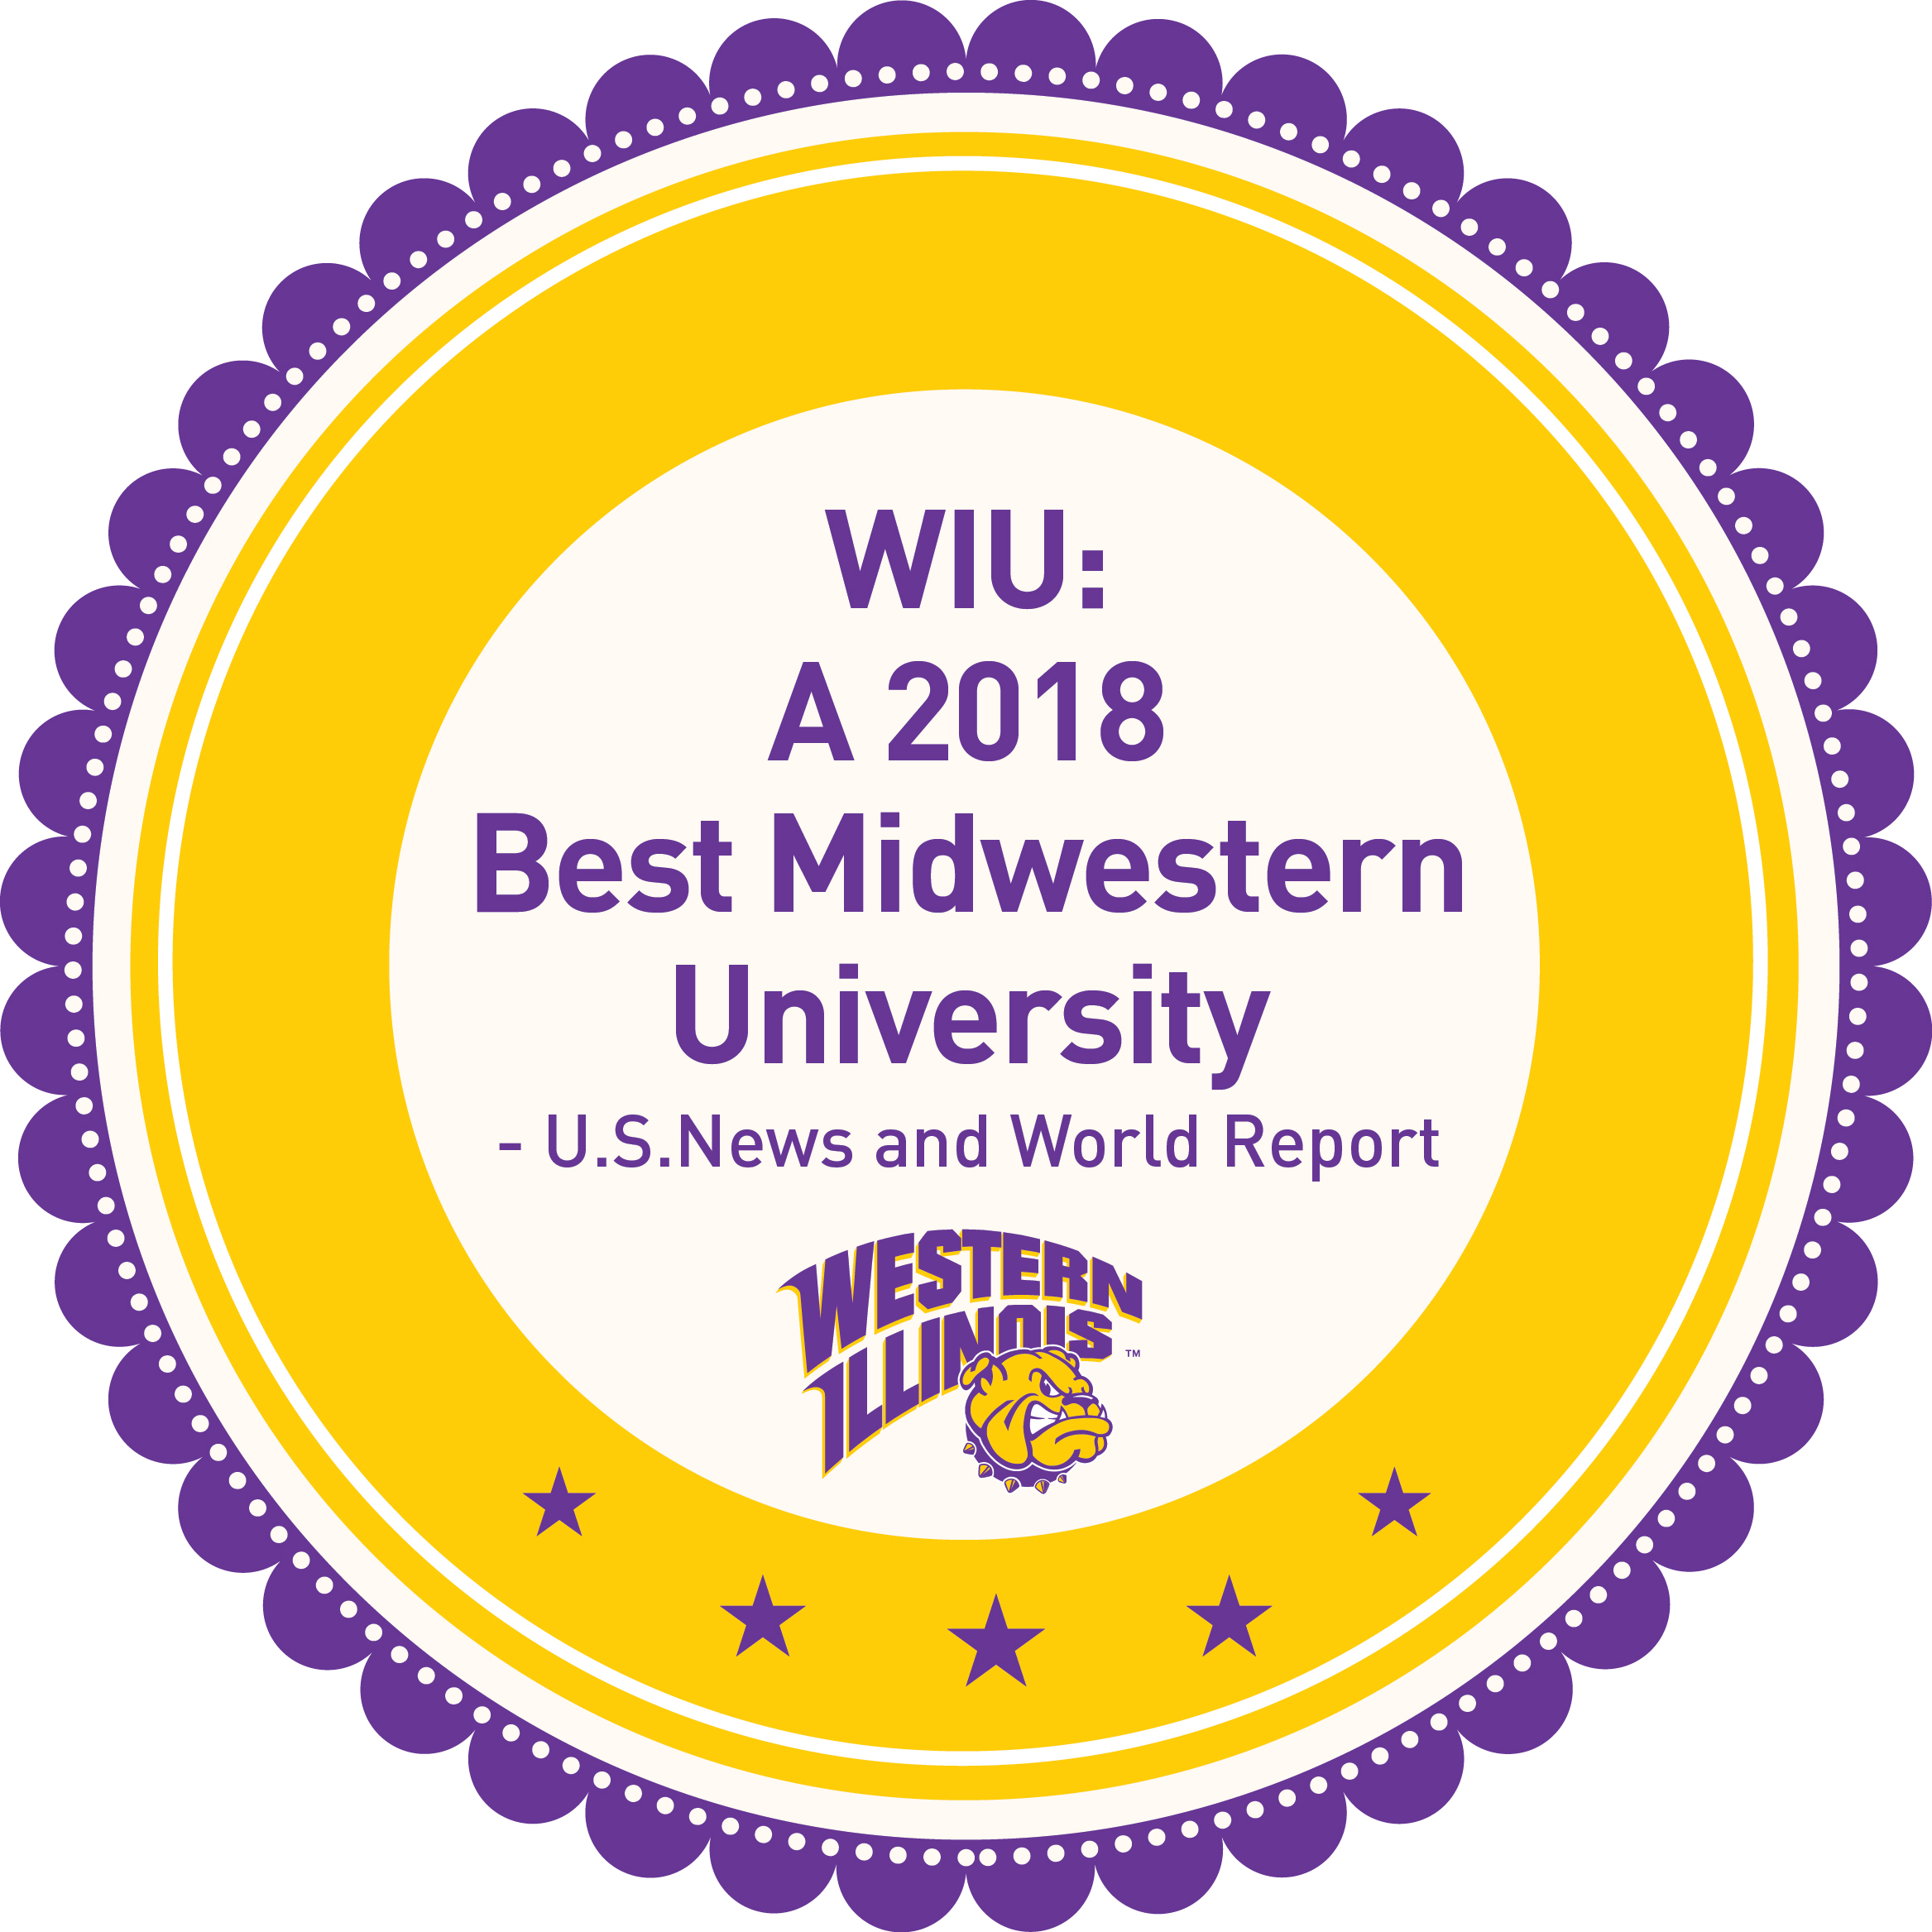 Best Midwestern University by U.S. News and World Report